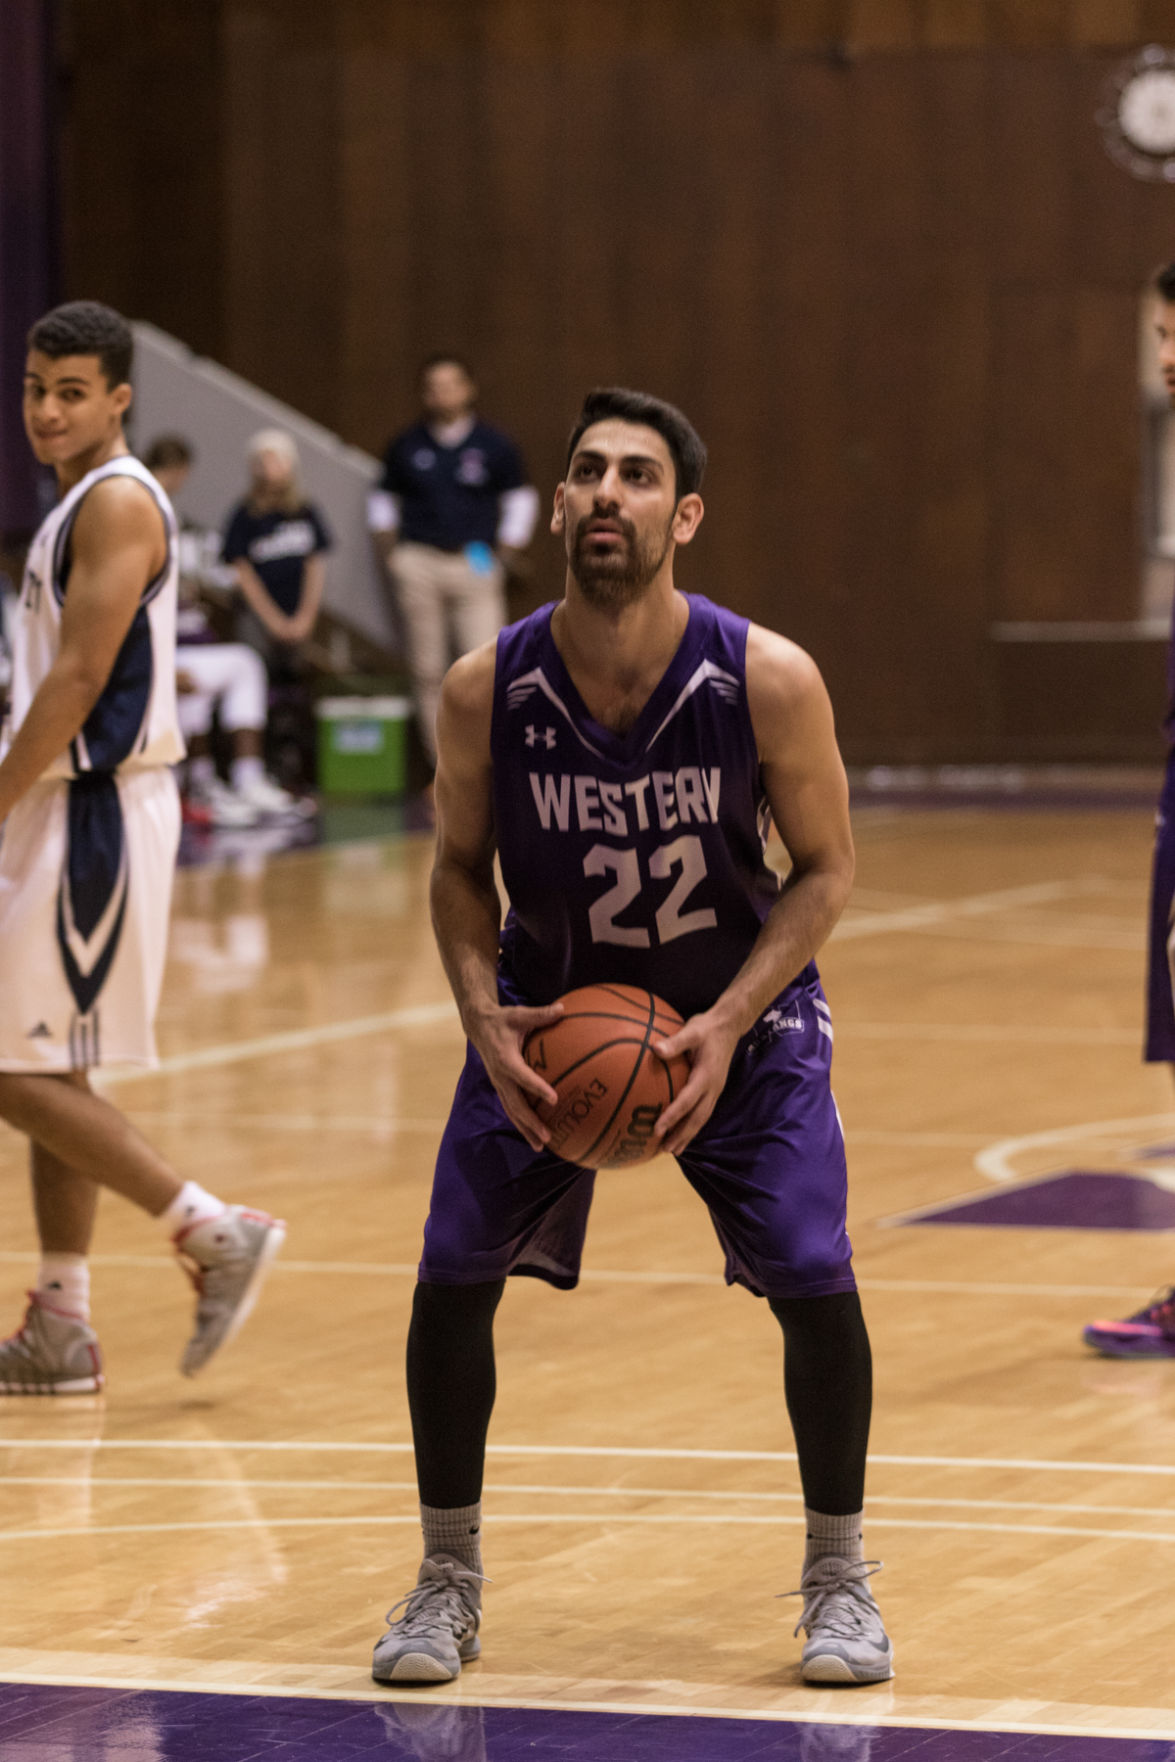 Men's Basketball Nov22 - Alex Stelmacovich_08.jpg